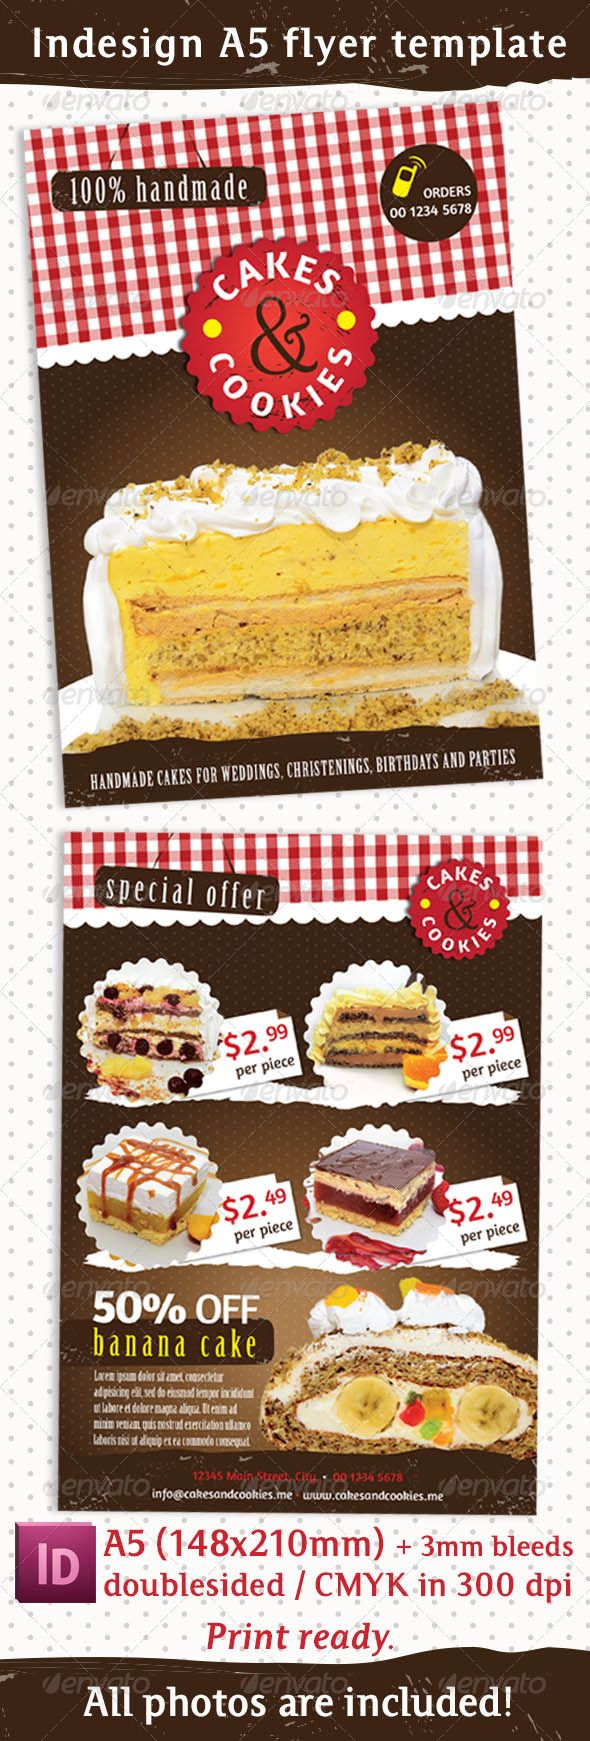 bake flyer personalized printable by snicklefritzdesignco cake and cookies flyer